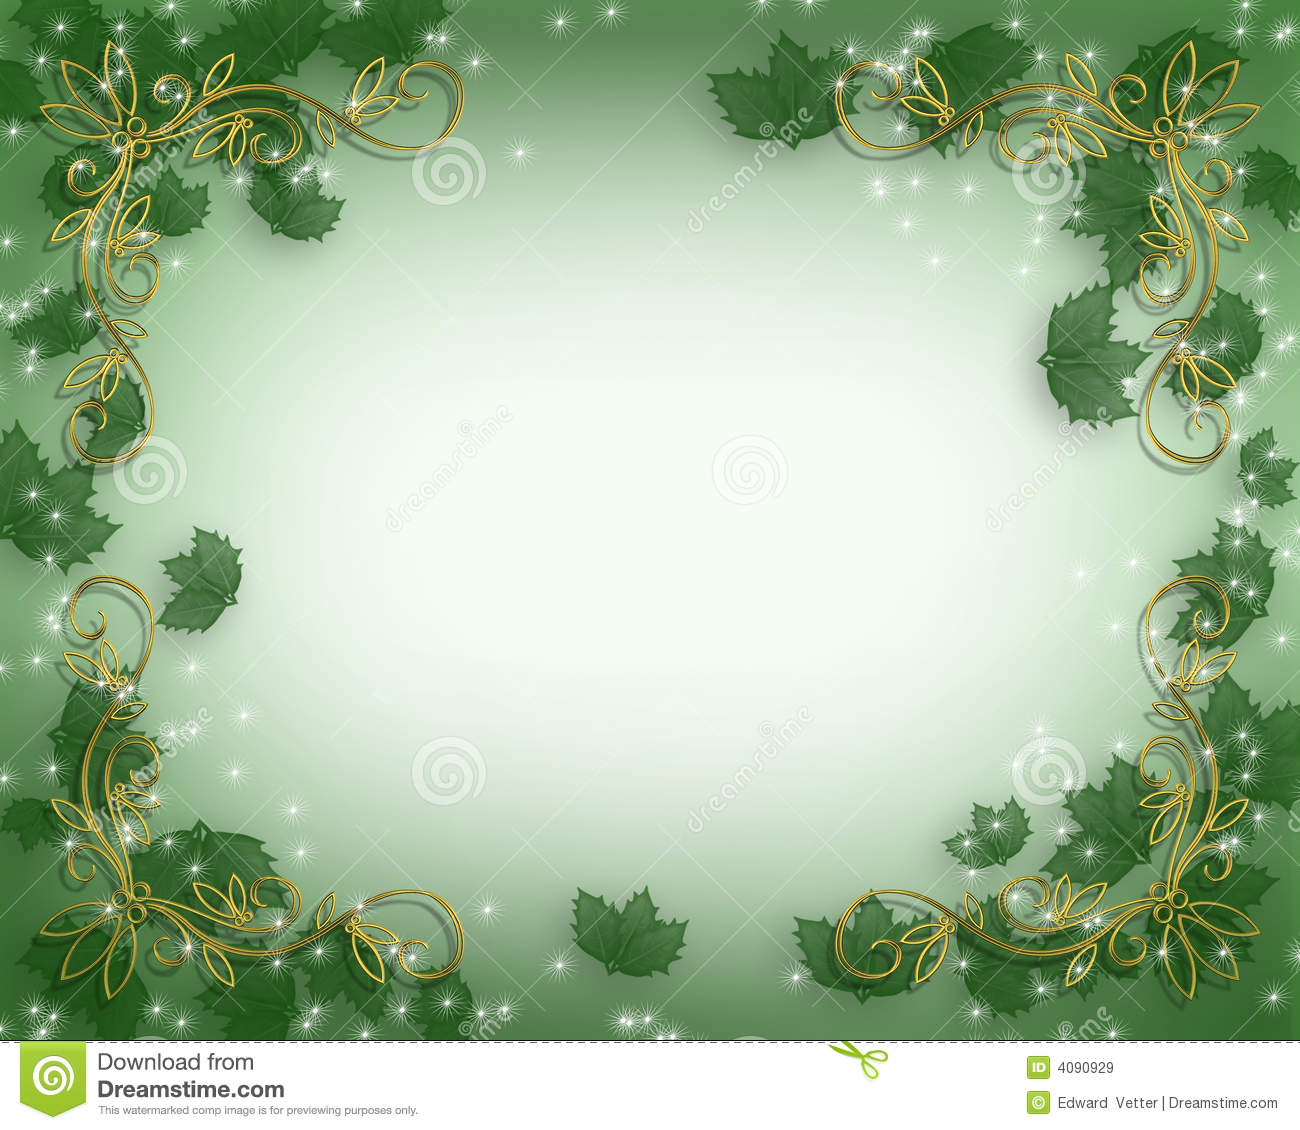 Christmas Holly Background Royalty Free Stock Images - Image: 4090929